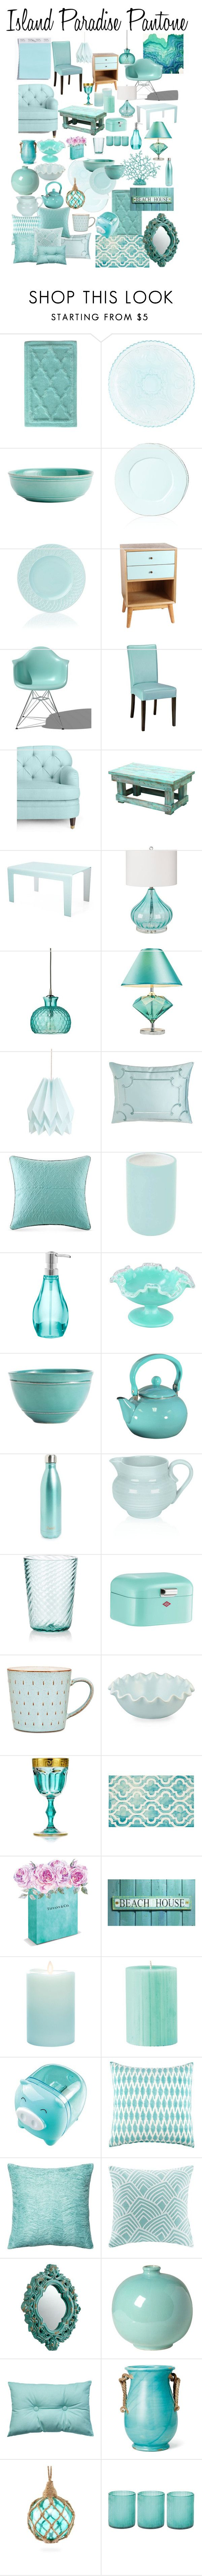 """Island Paradise Pantone Decor"" by teciane-ro ❤ liked on Polyvore featuring Jessica Simpson, Pier 1 Imports, Pottery Barn, Vietri, Lenox, Antique Revival, Herman Miller, Home Decorators Collection, Kate Spade and Sovet Italia"